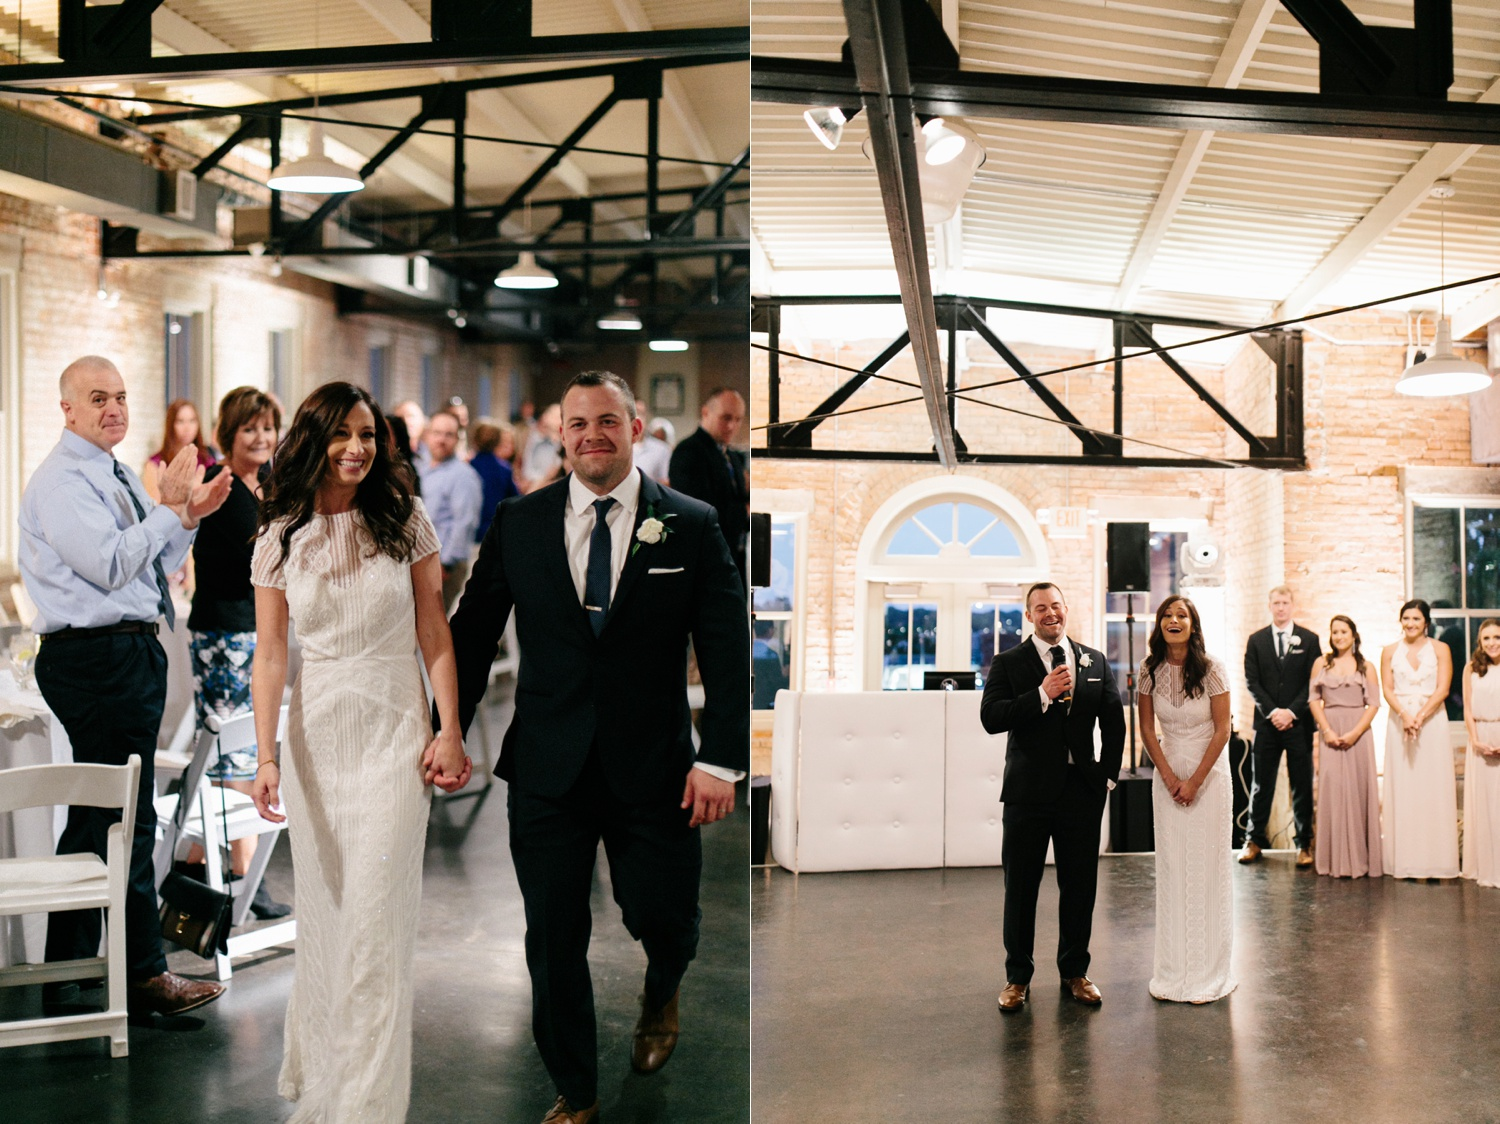 Kadee + Tyler | a raw, emotional wedding at the Filter Building on White Rock Lake in Dallas, TX by North Texas Wedding Photographer, Rachel Meagan Photography 194